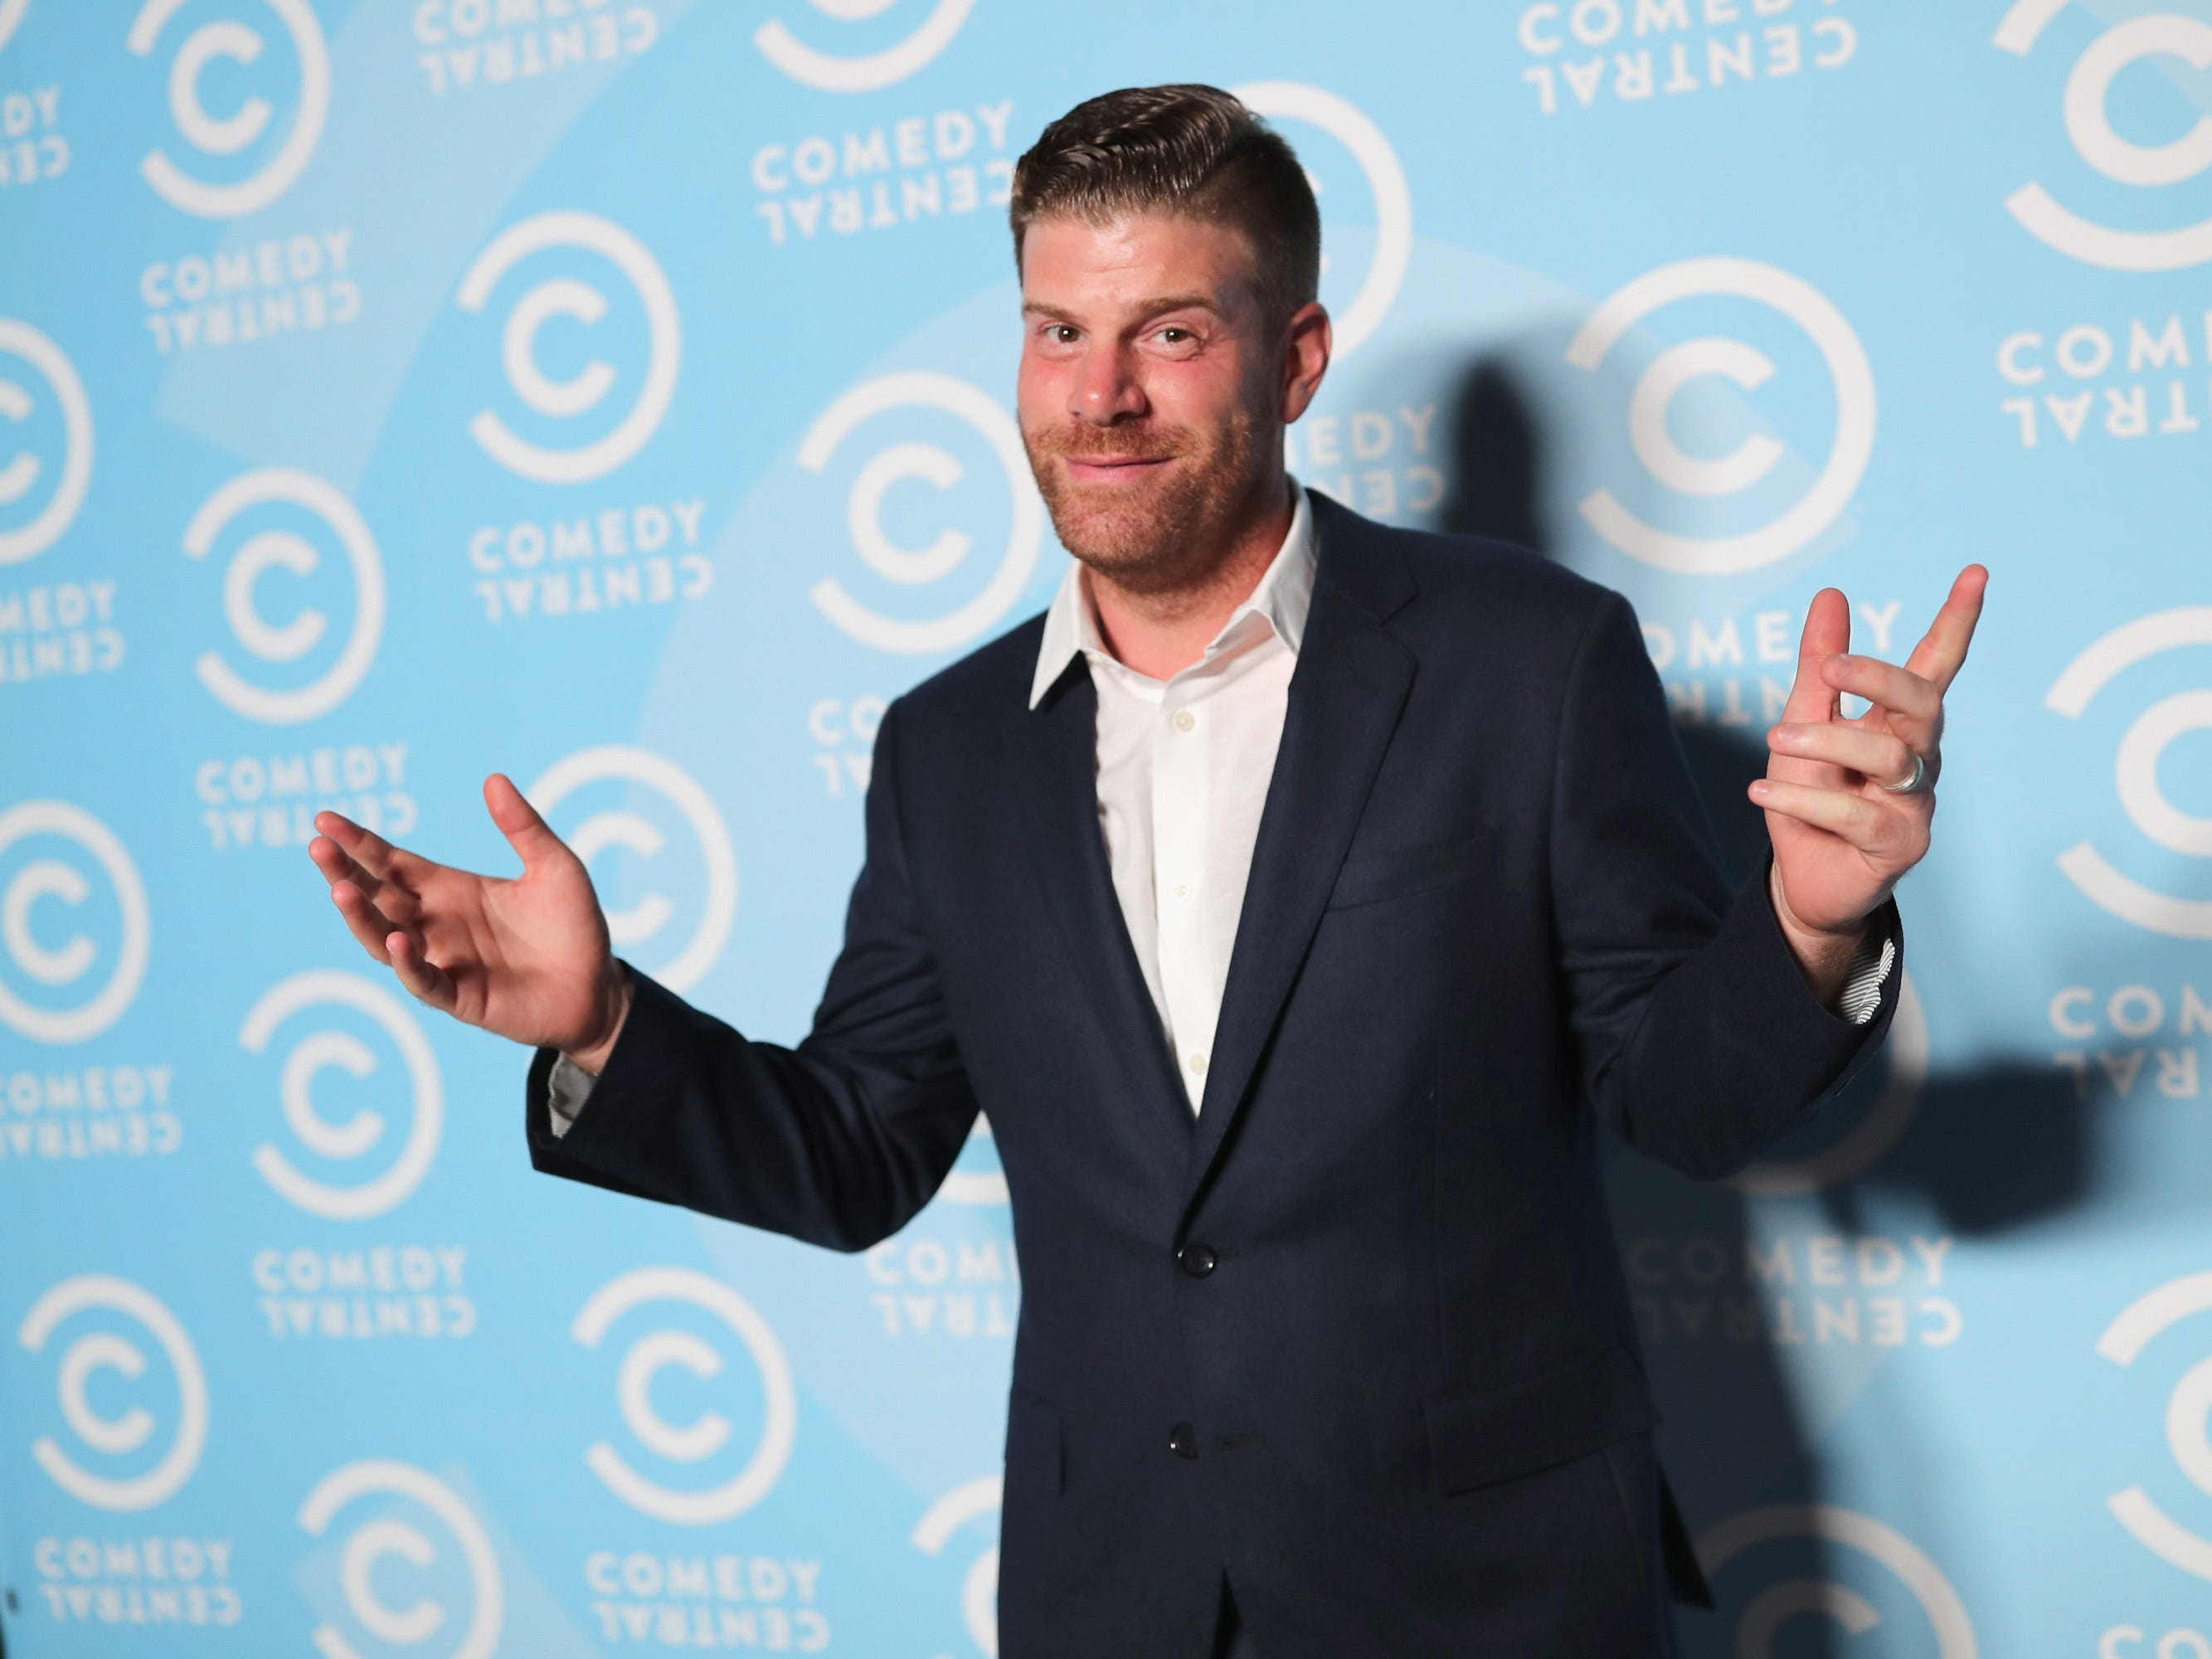 Stephen Rannazzisi performs at Helium Comedy Club in Indianapolis on March 21-13, 2019.